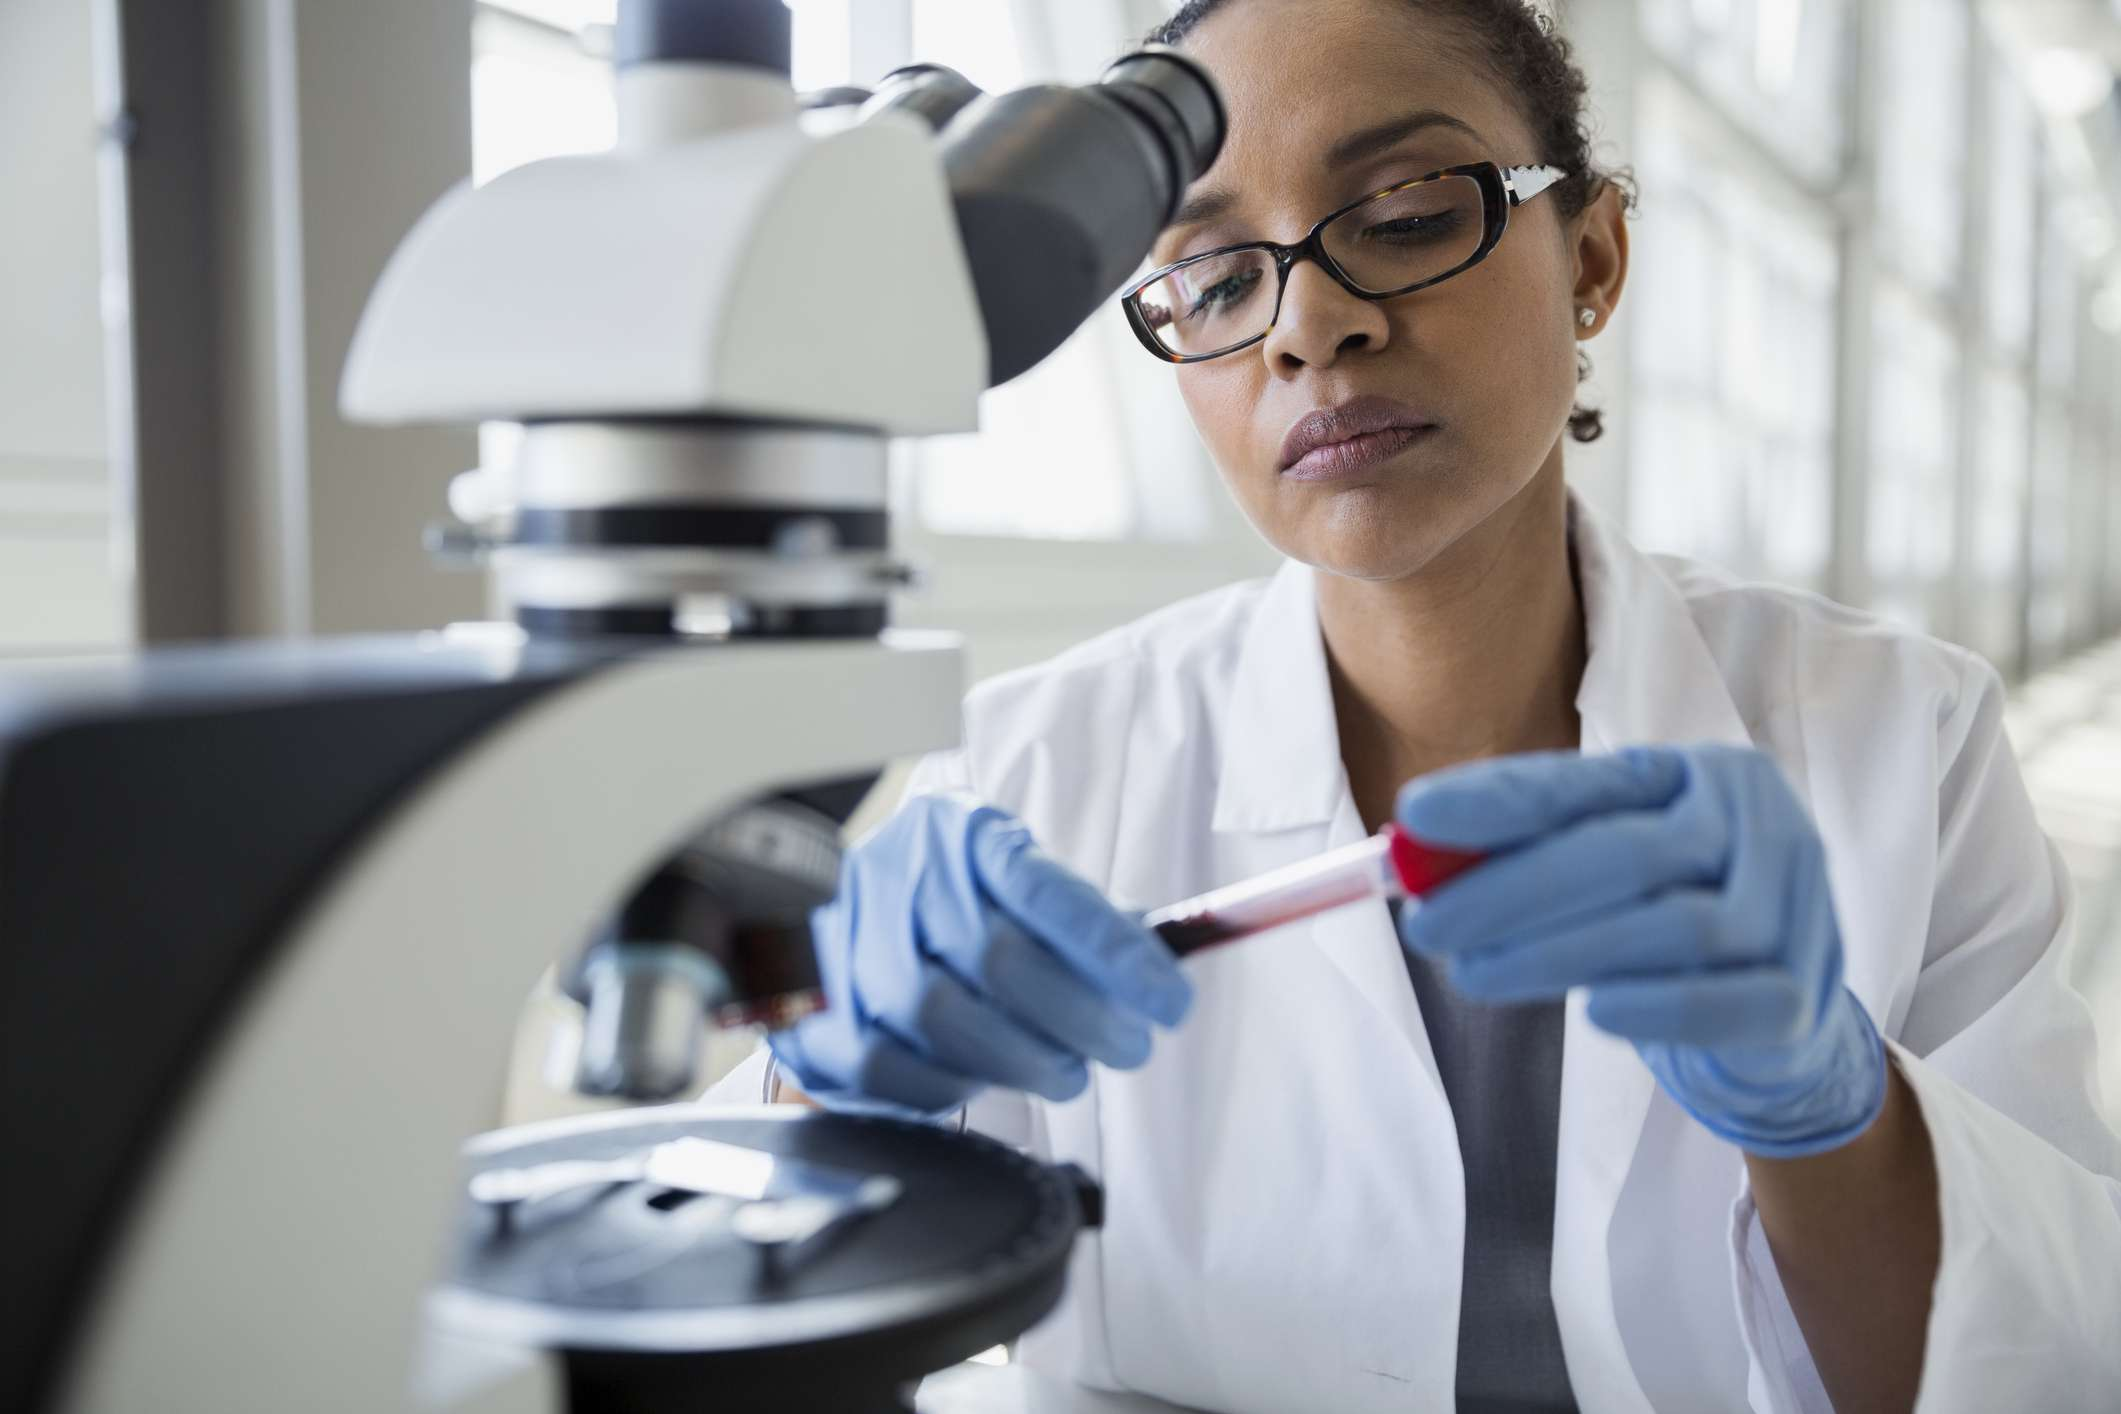 A scientist at a microscope examining a blood sample test tube